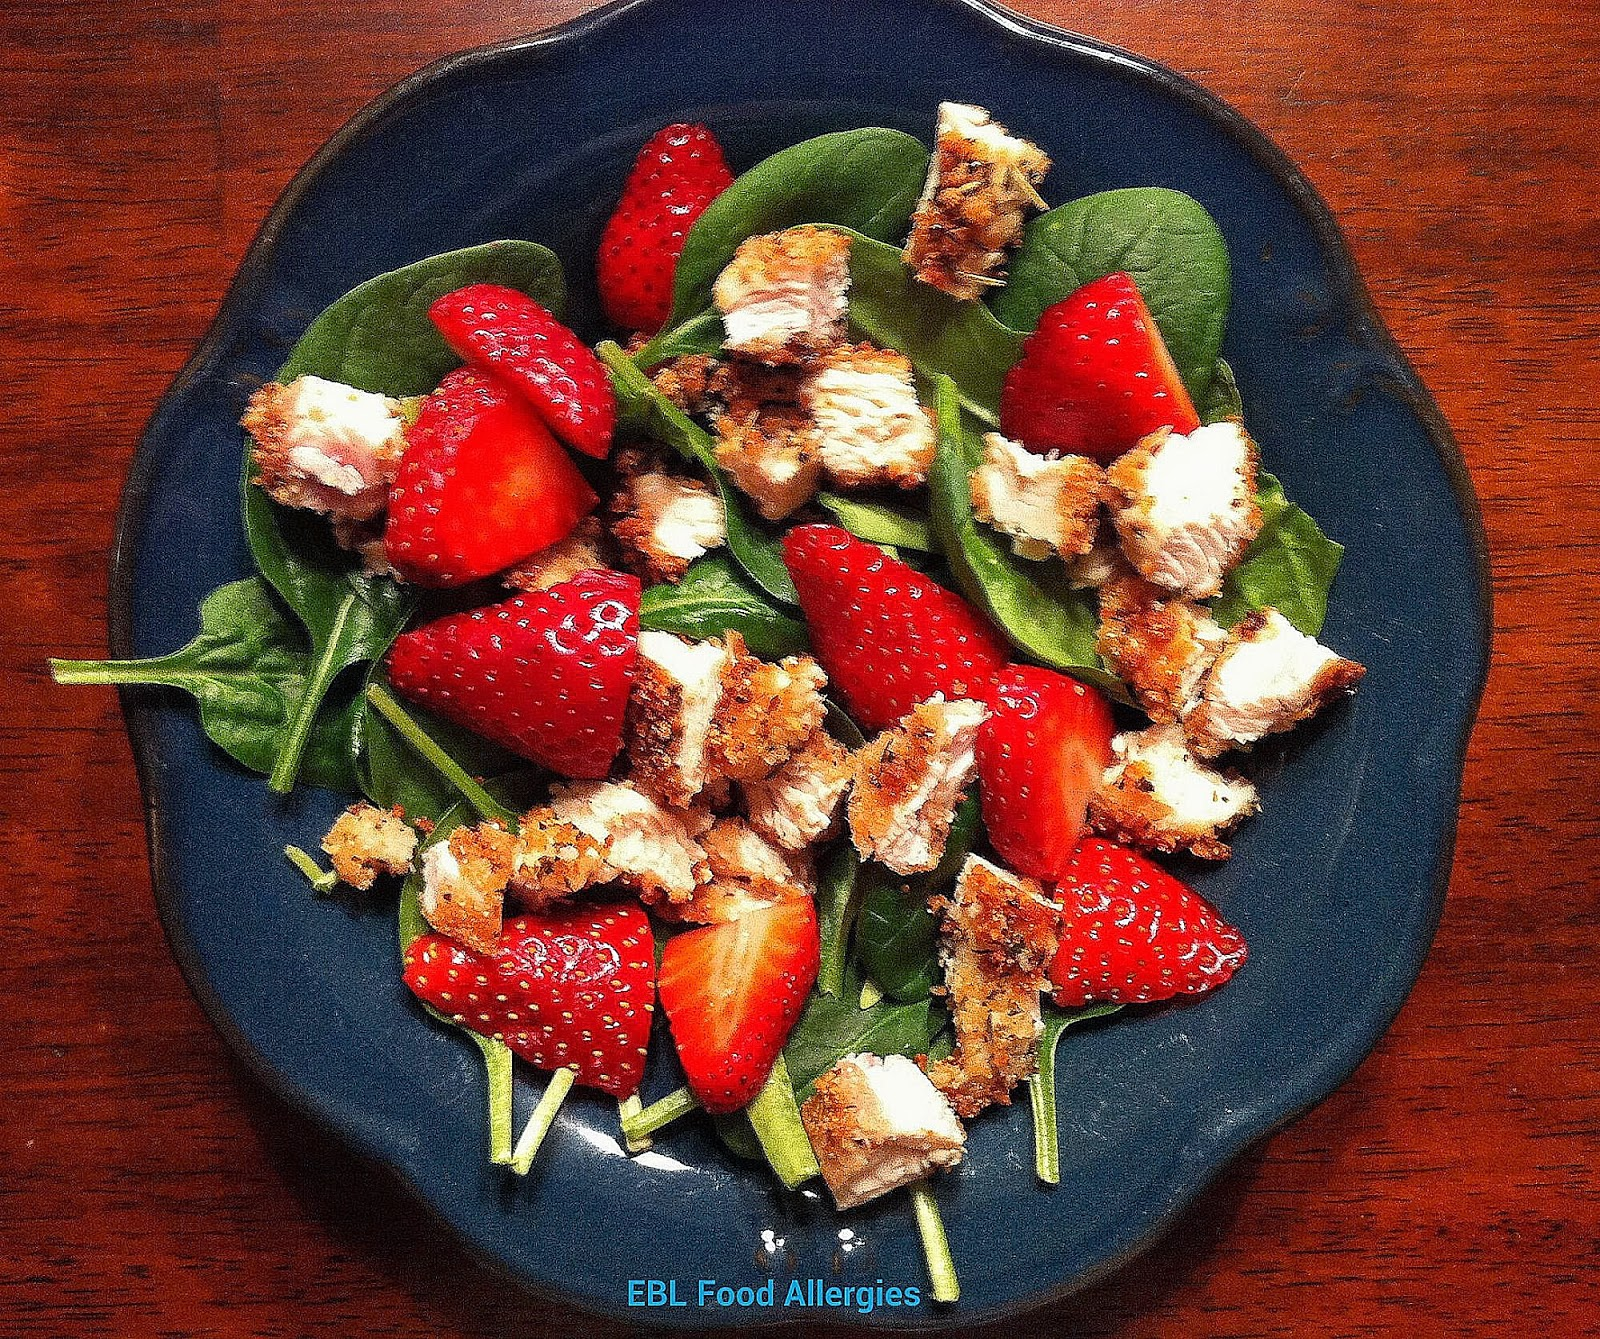 EBL Food Allergies: Strawberry Spinach Salad with Chicken - Top8-Free Gluten-Free